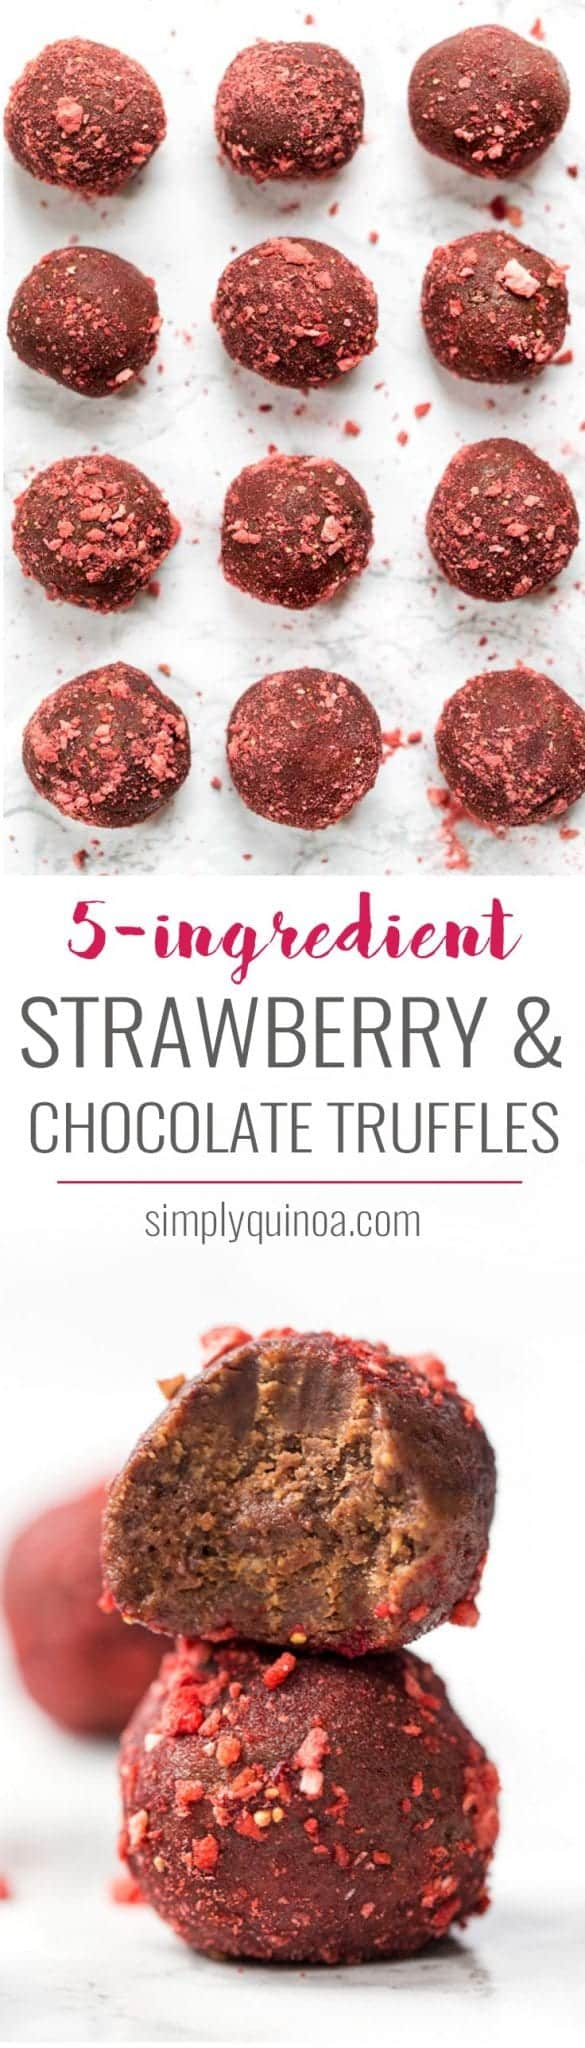 vegan chocolate truffles made with 5 ingredients